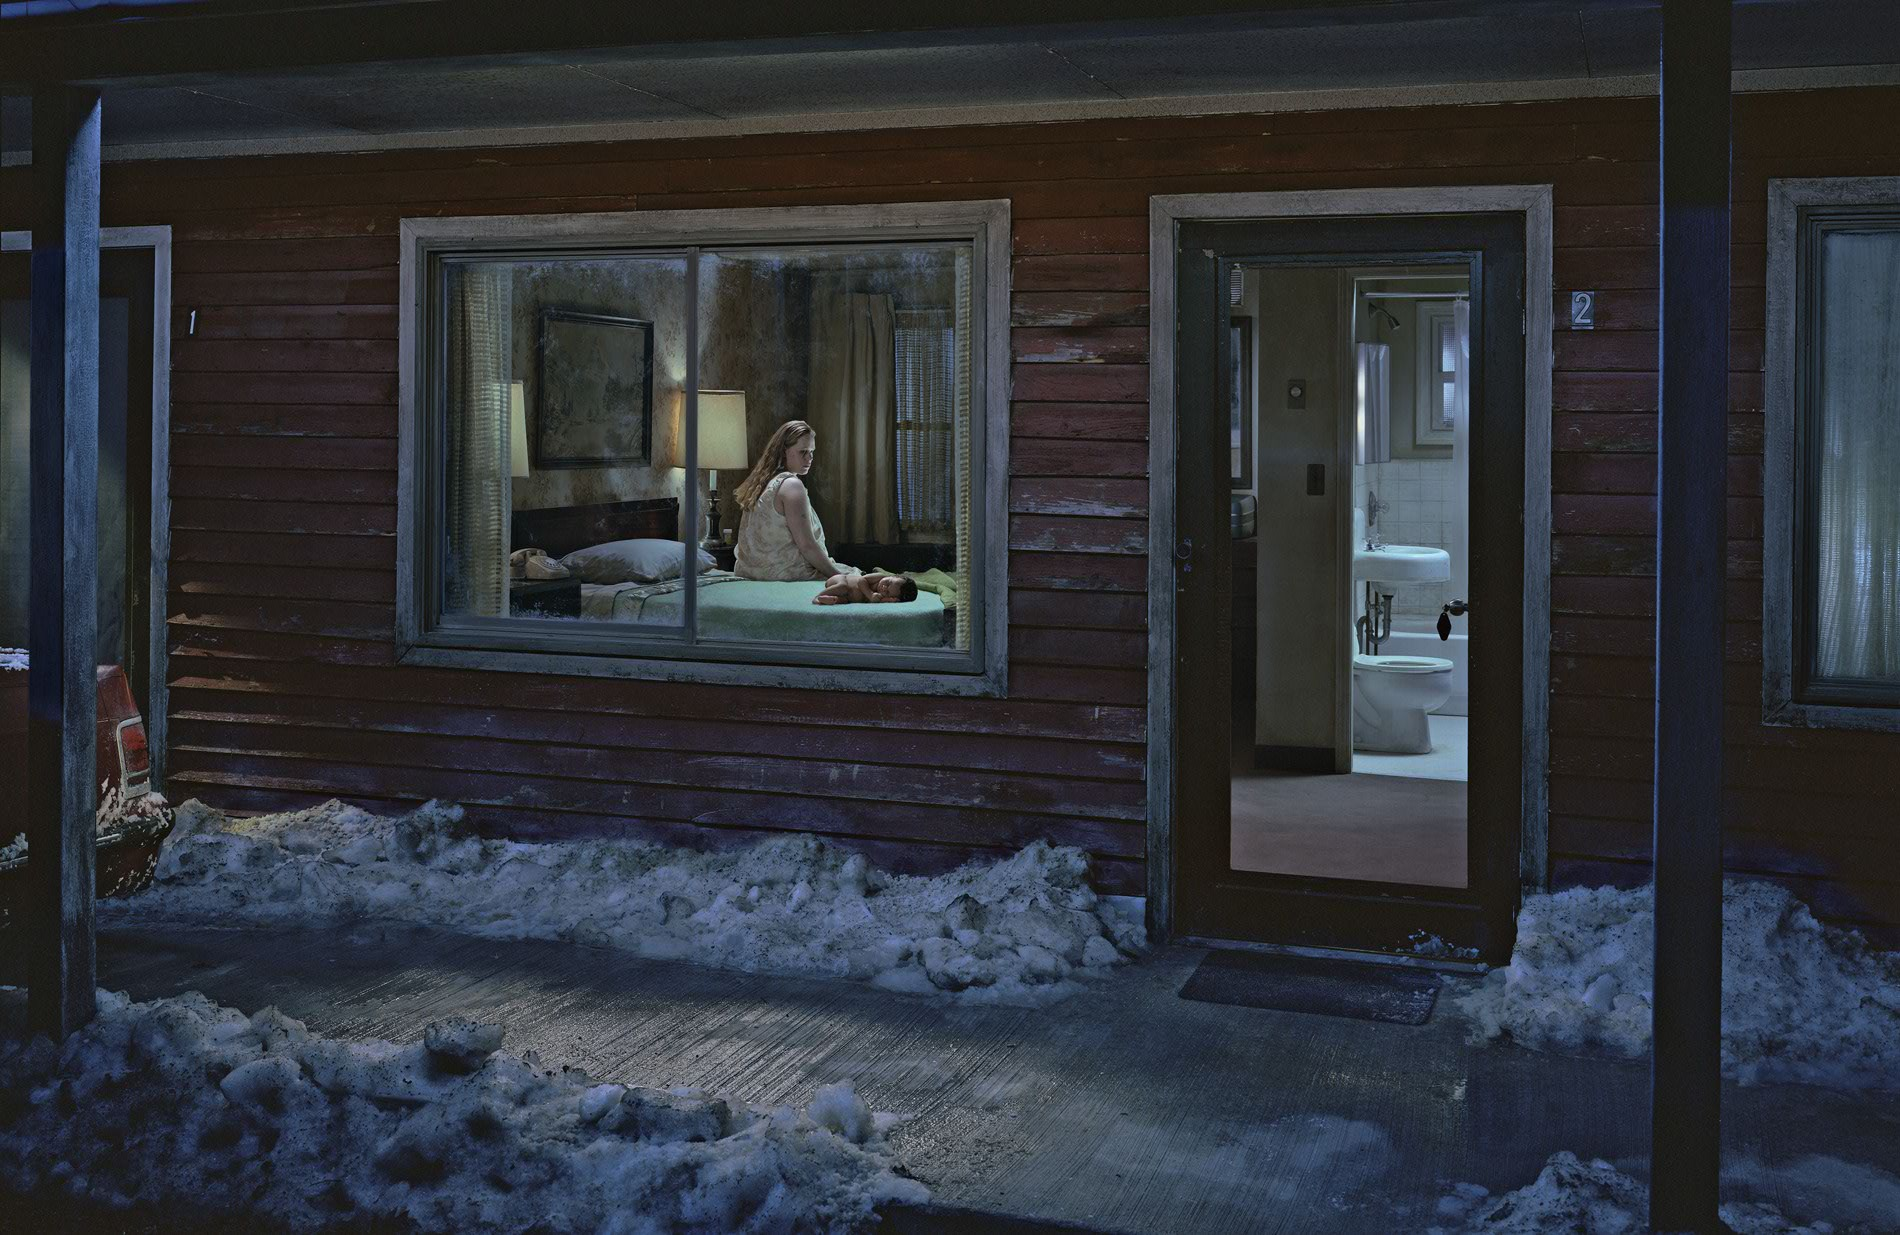 gregory crewdson 23 fine art printing toronto lepix. Black Bedroom Furniture Sets. Home Design Ideas